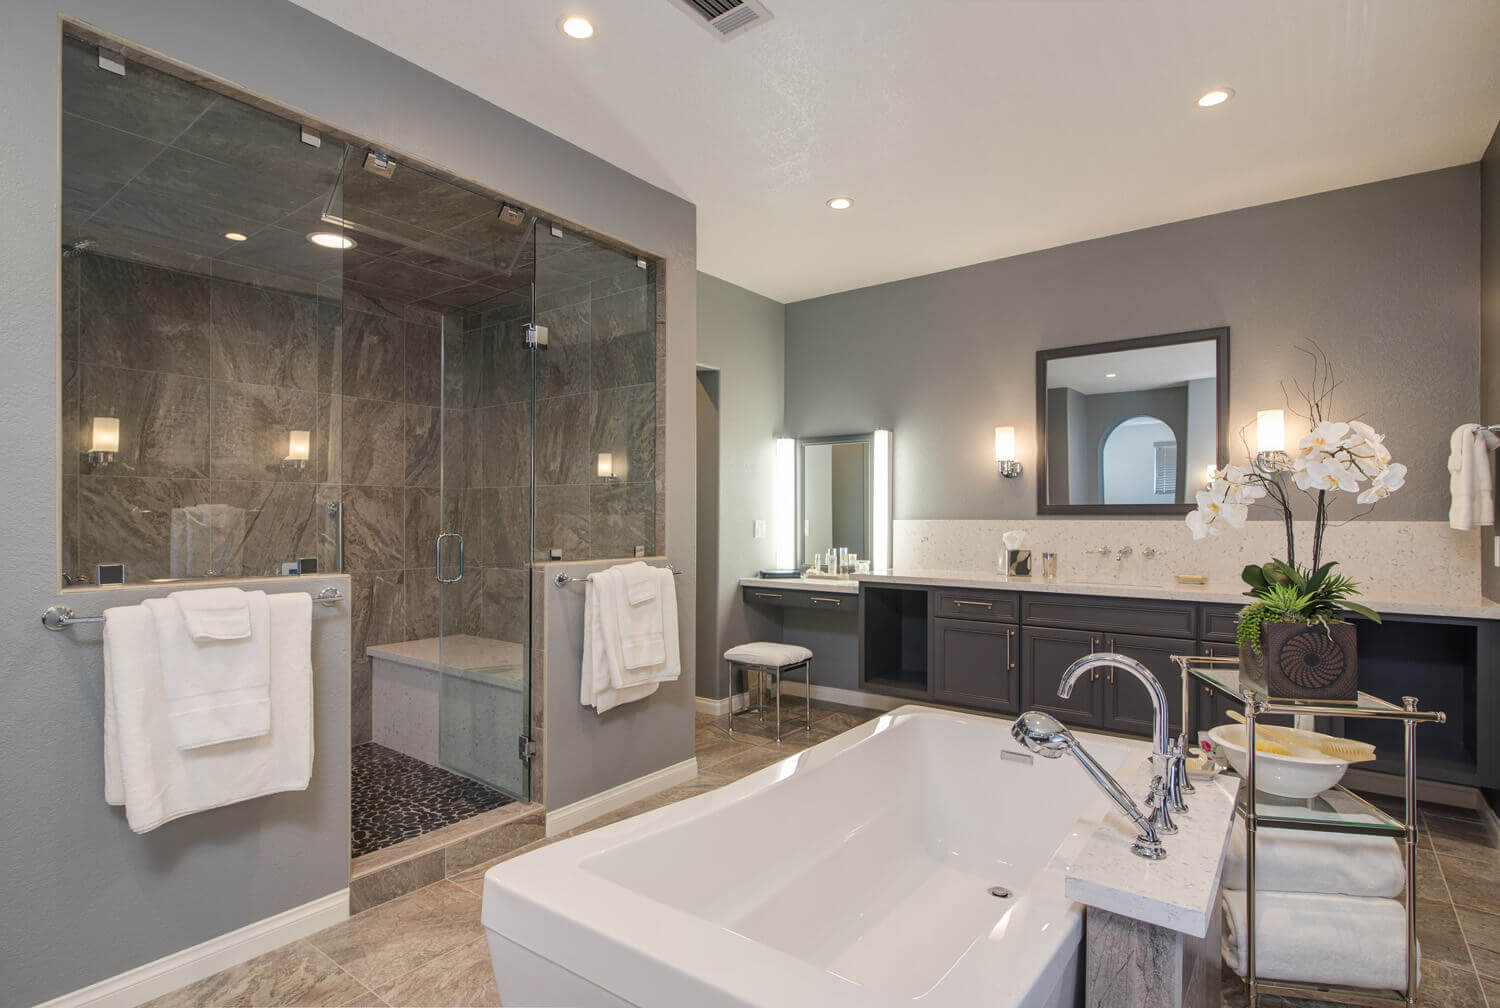 2018 Bathroom Renovation Cost - Get Prices For The Most ... on Small:e_D8Ihxdoce= Restroom Ideas  id=80975